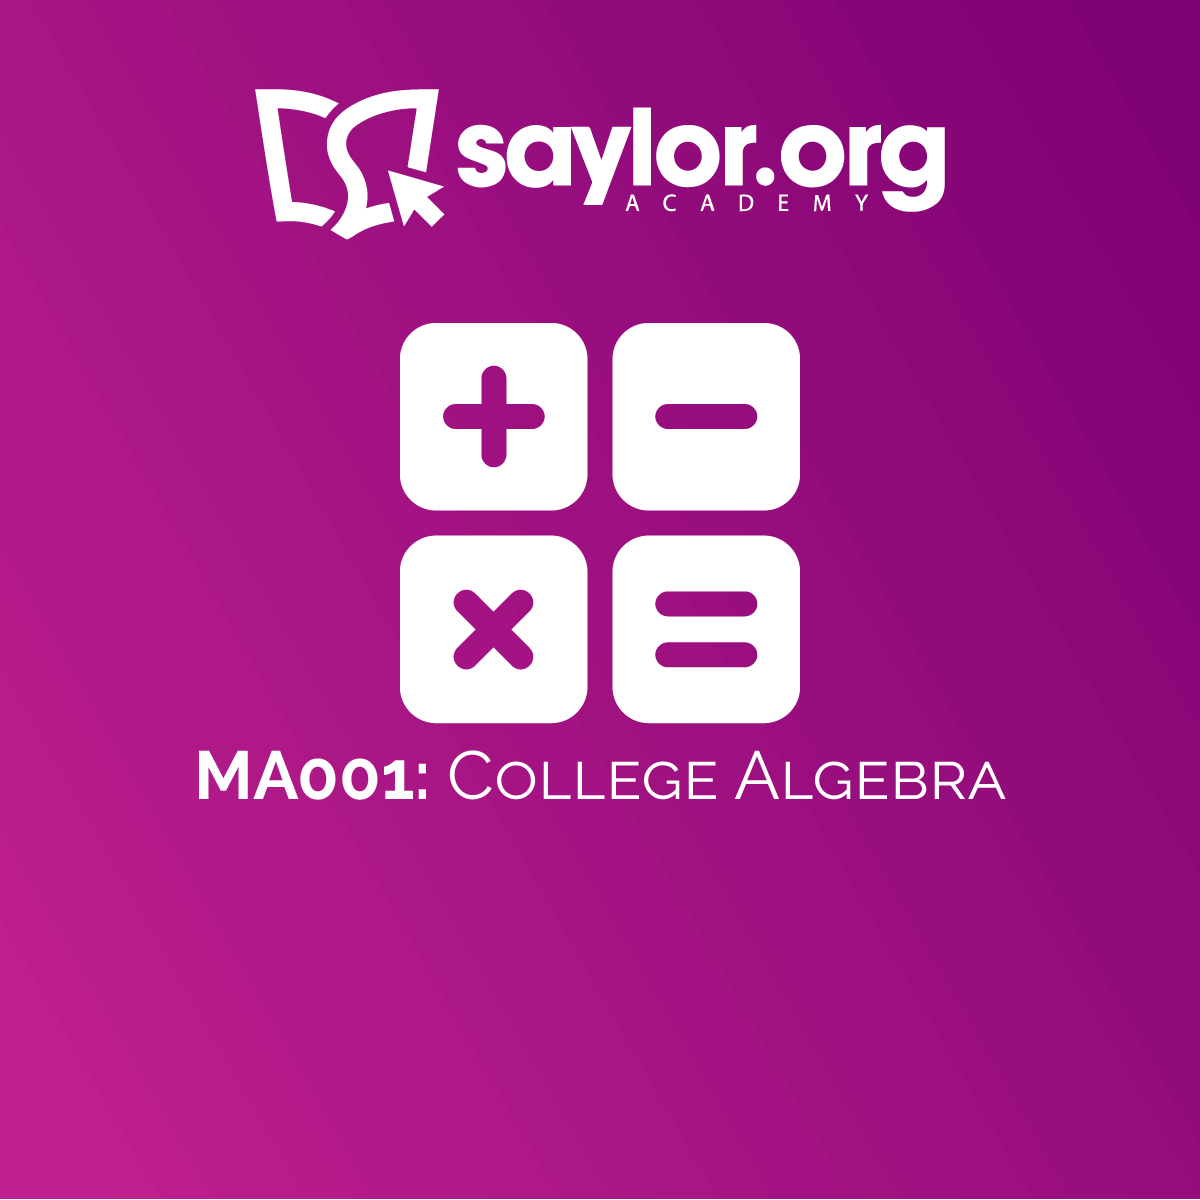 MA001: College Algebra, Topic: Unit 1: Basic Algebra